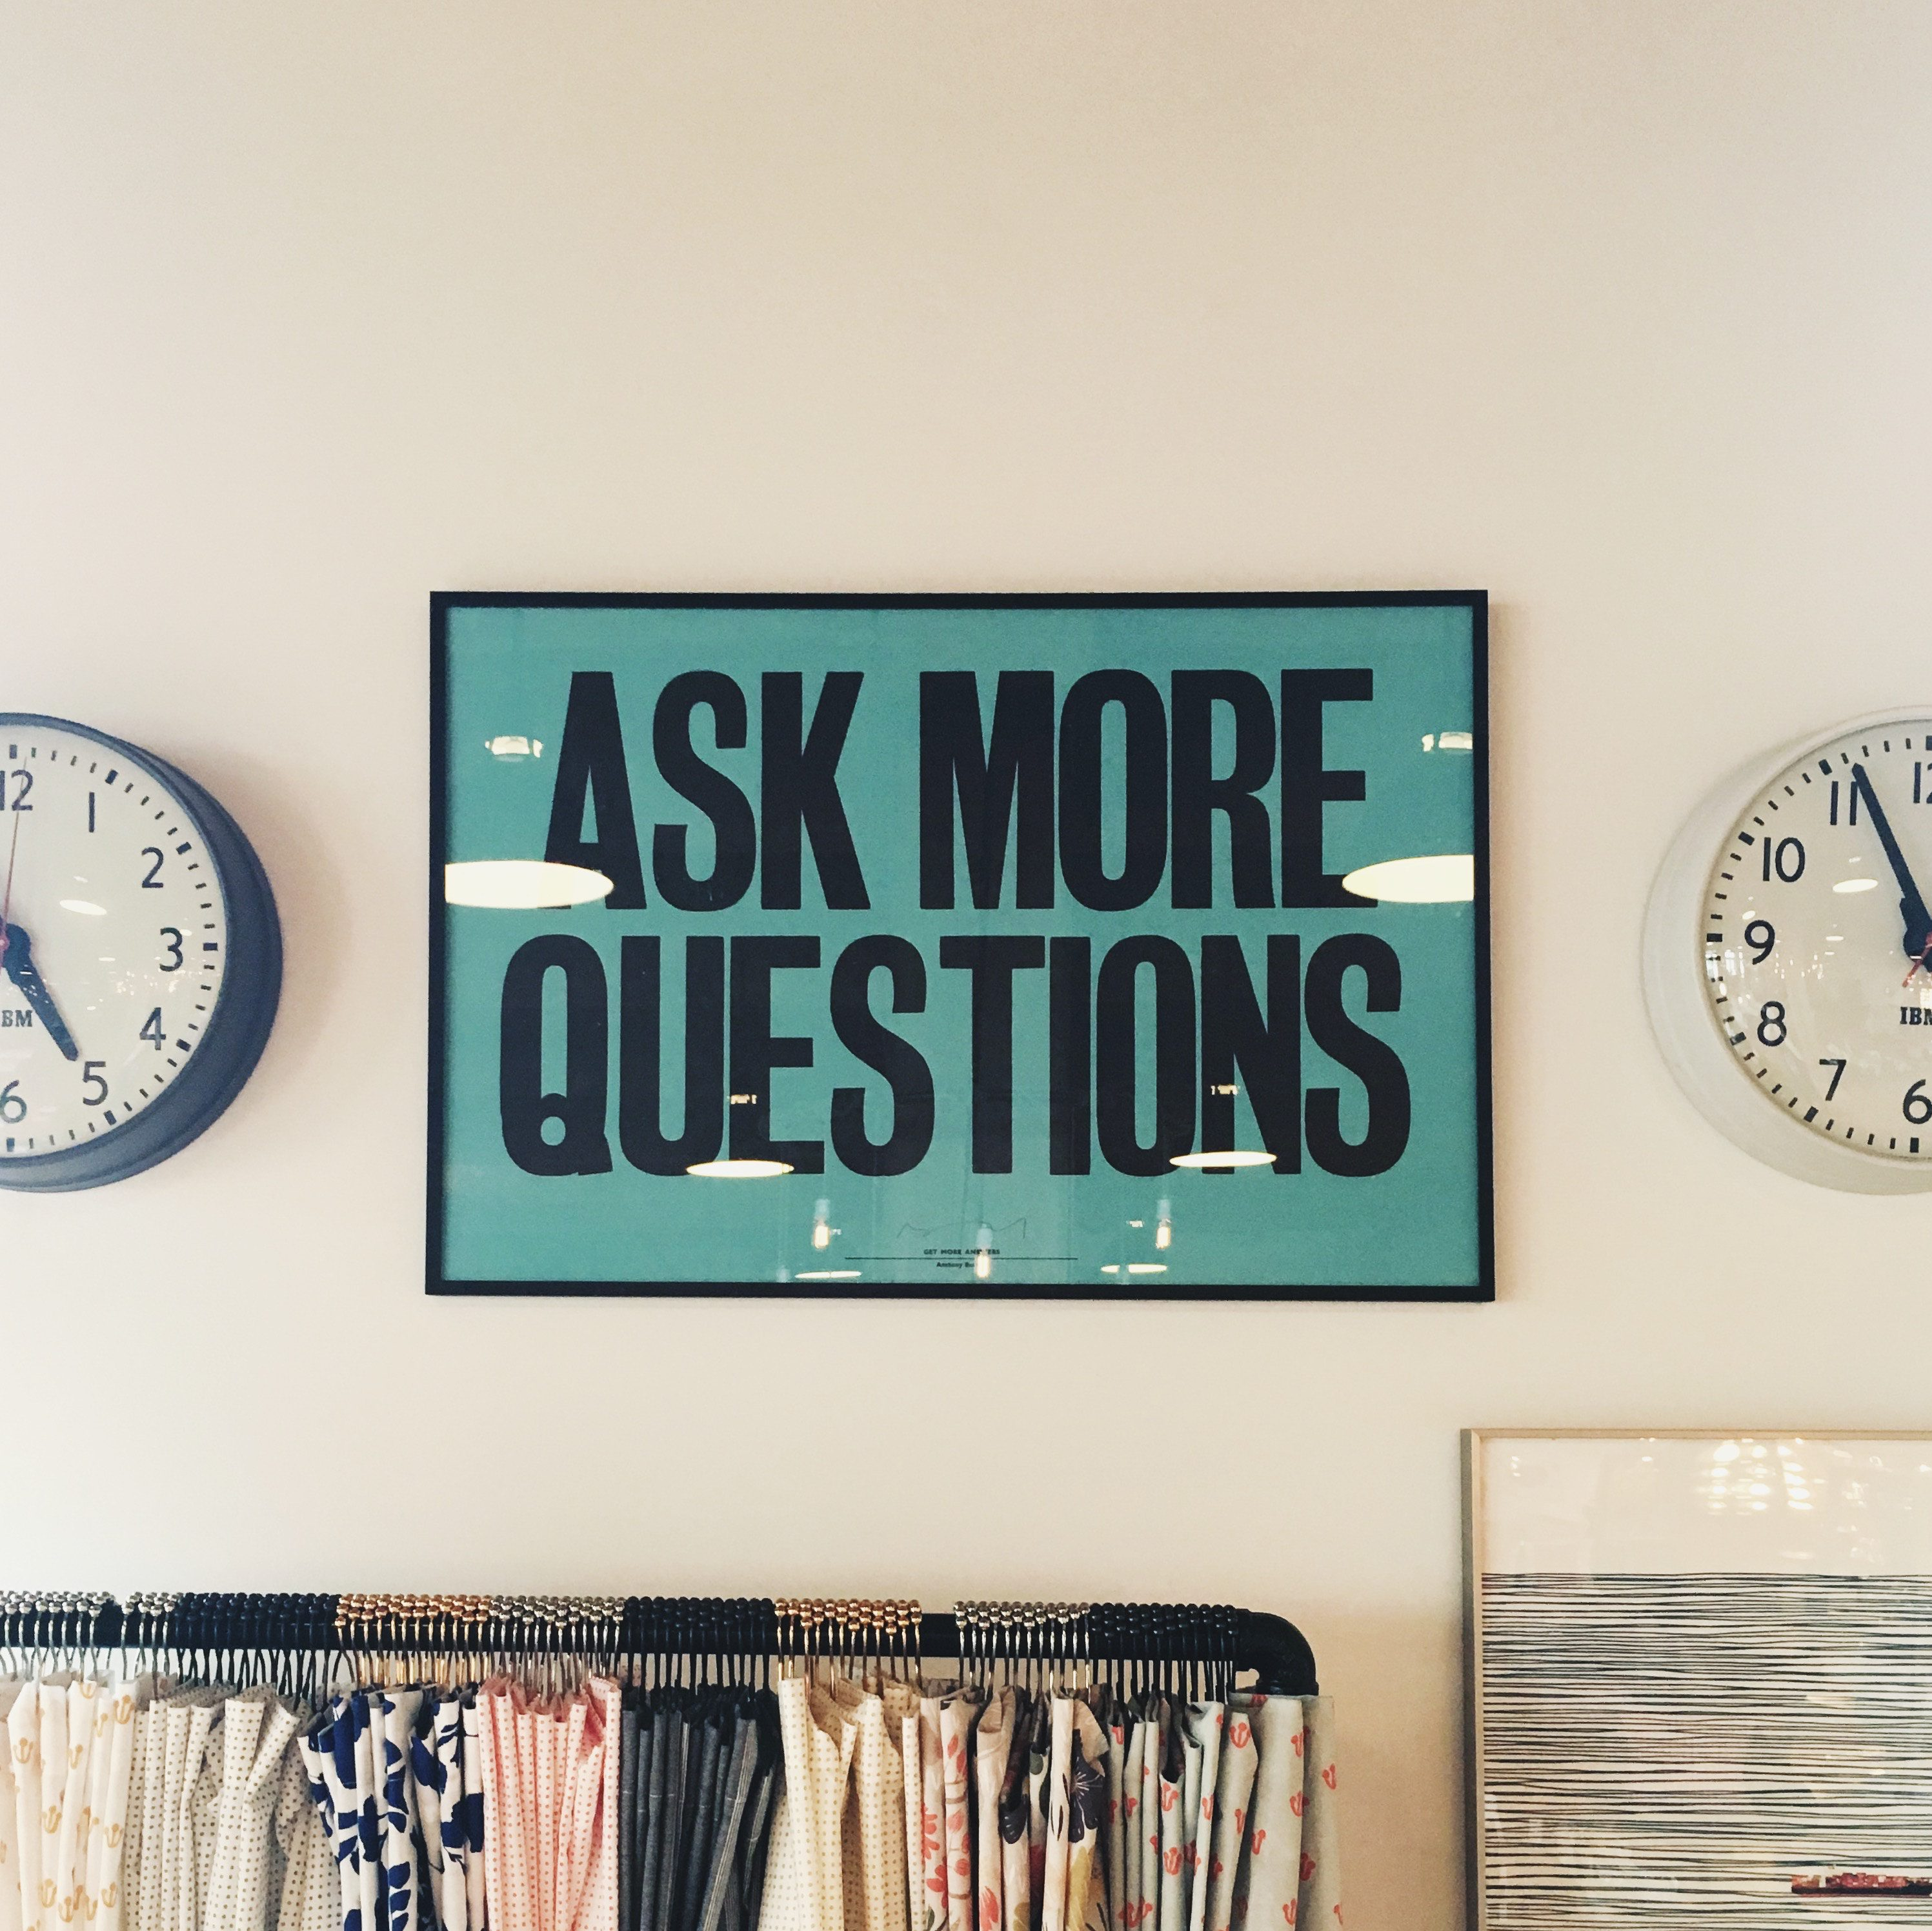 questions to ask AV company